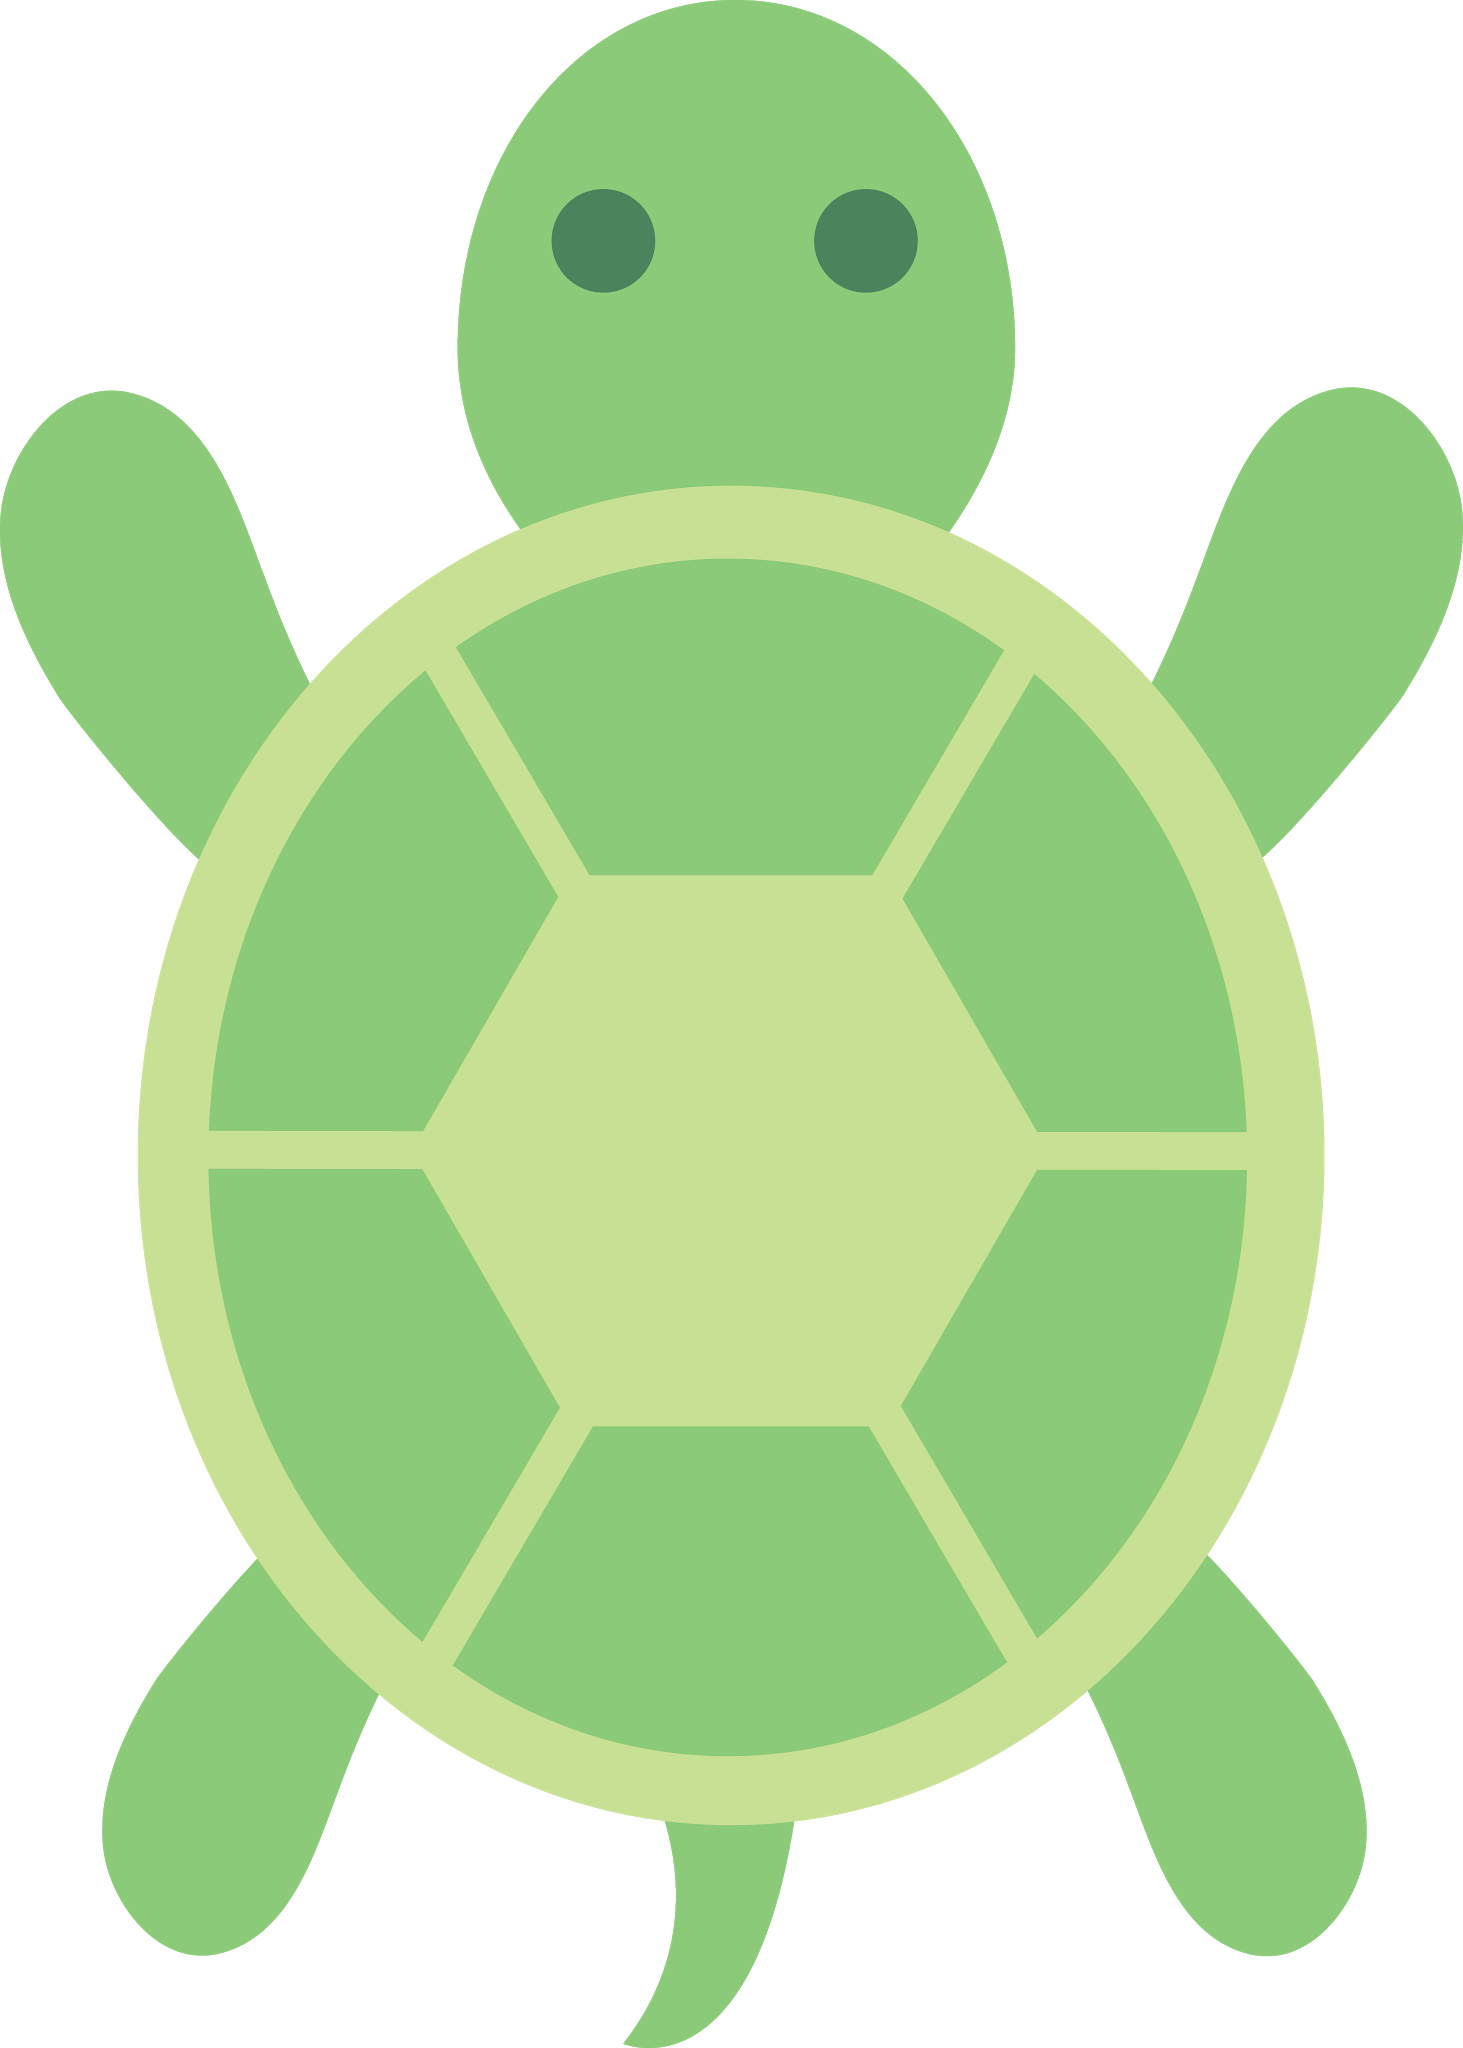 Turtle Outline Png Turtle Png Image And Clipart Turtle Crafts Art And Craft Videos Free Clip Art